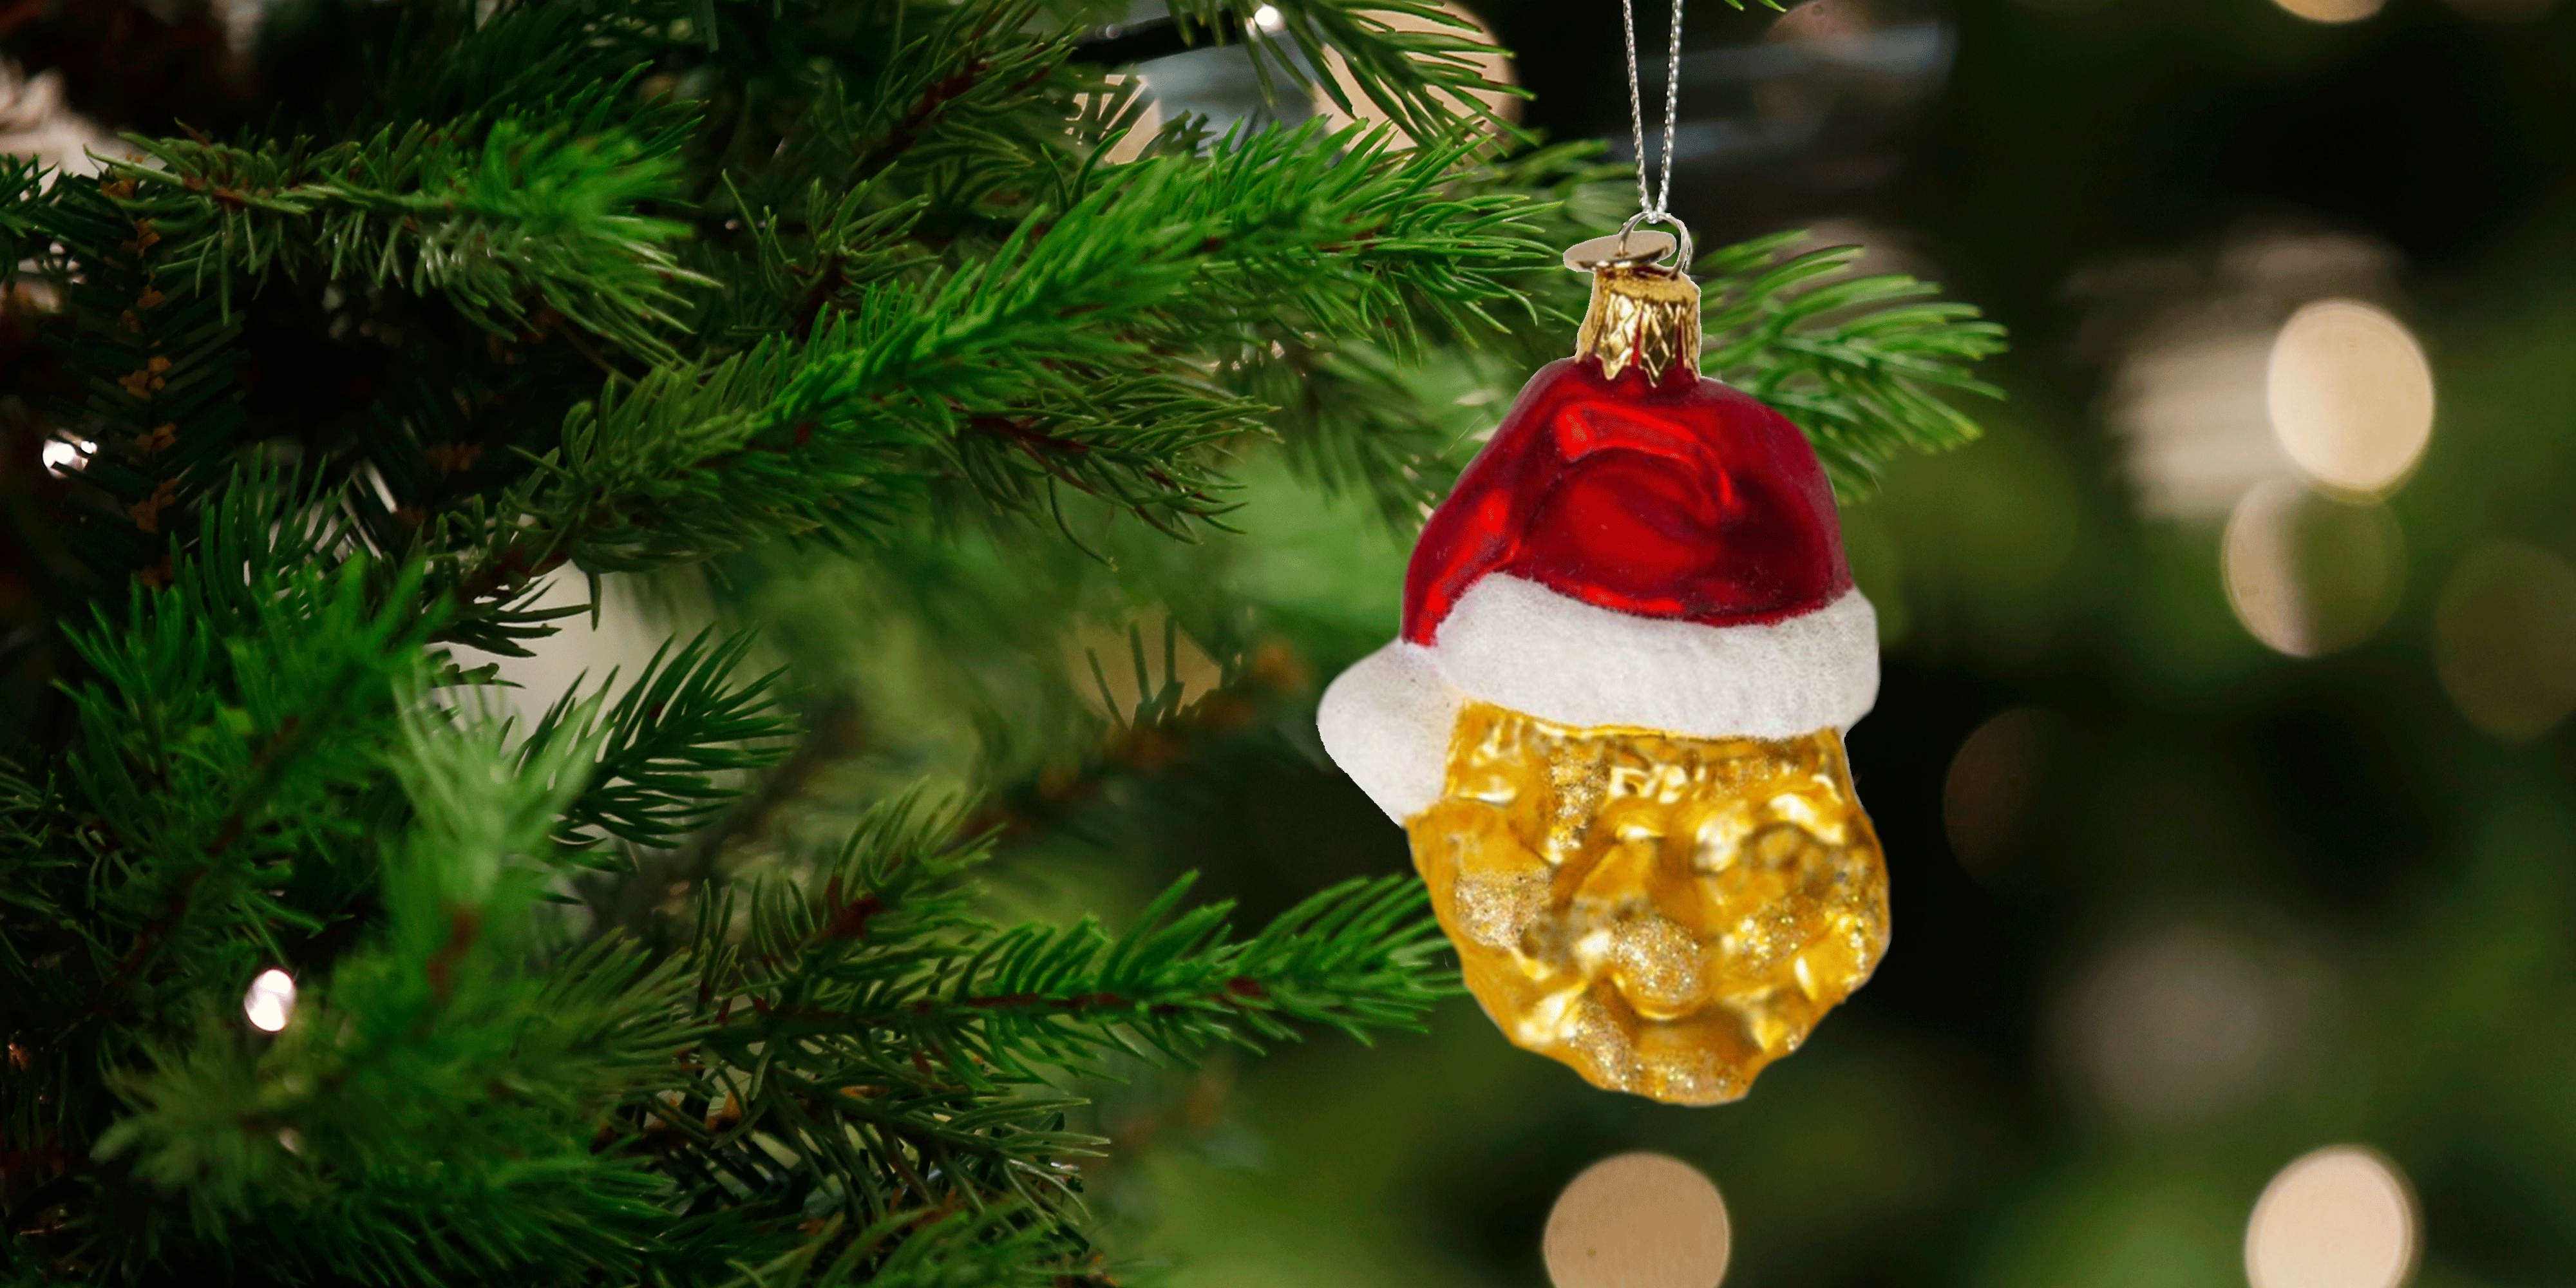 Mcnugget Christmas Ornaments 2020 McDonald's Made Limited Edition Chicken McNugget String Lights For